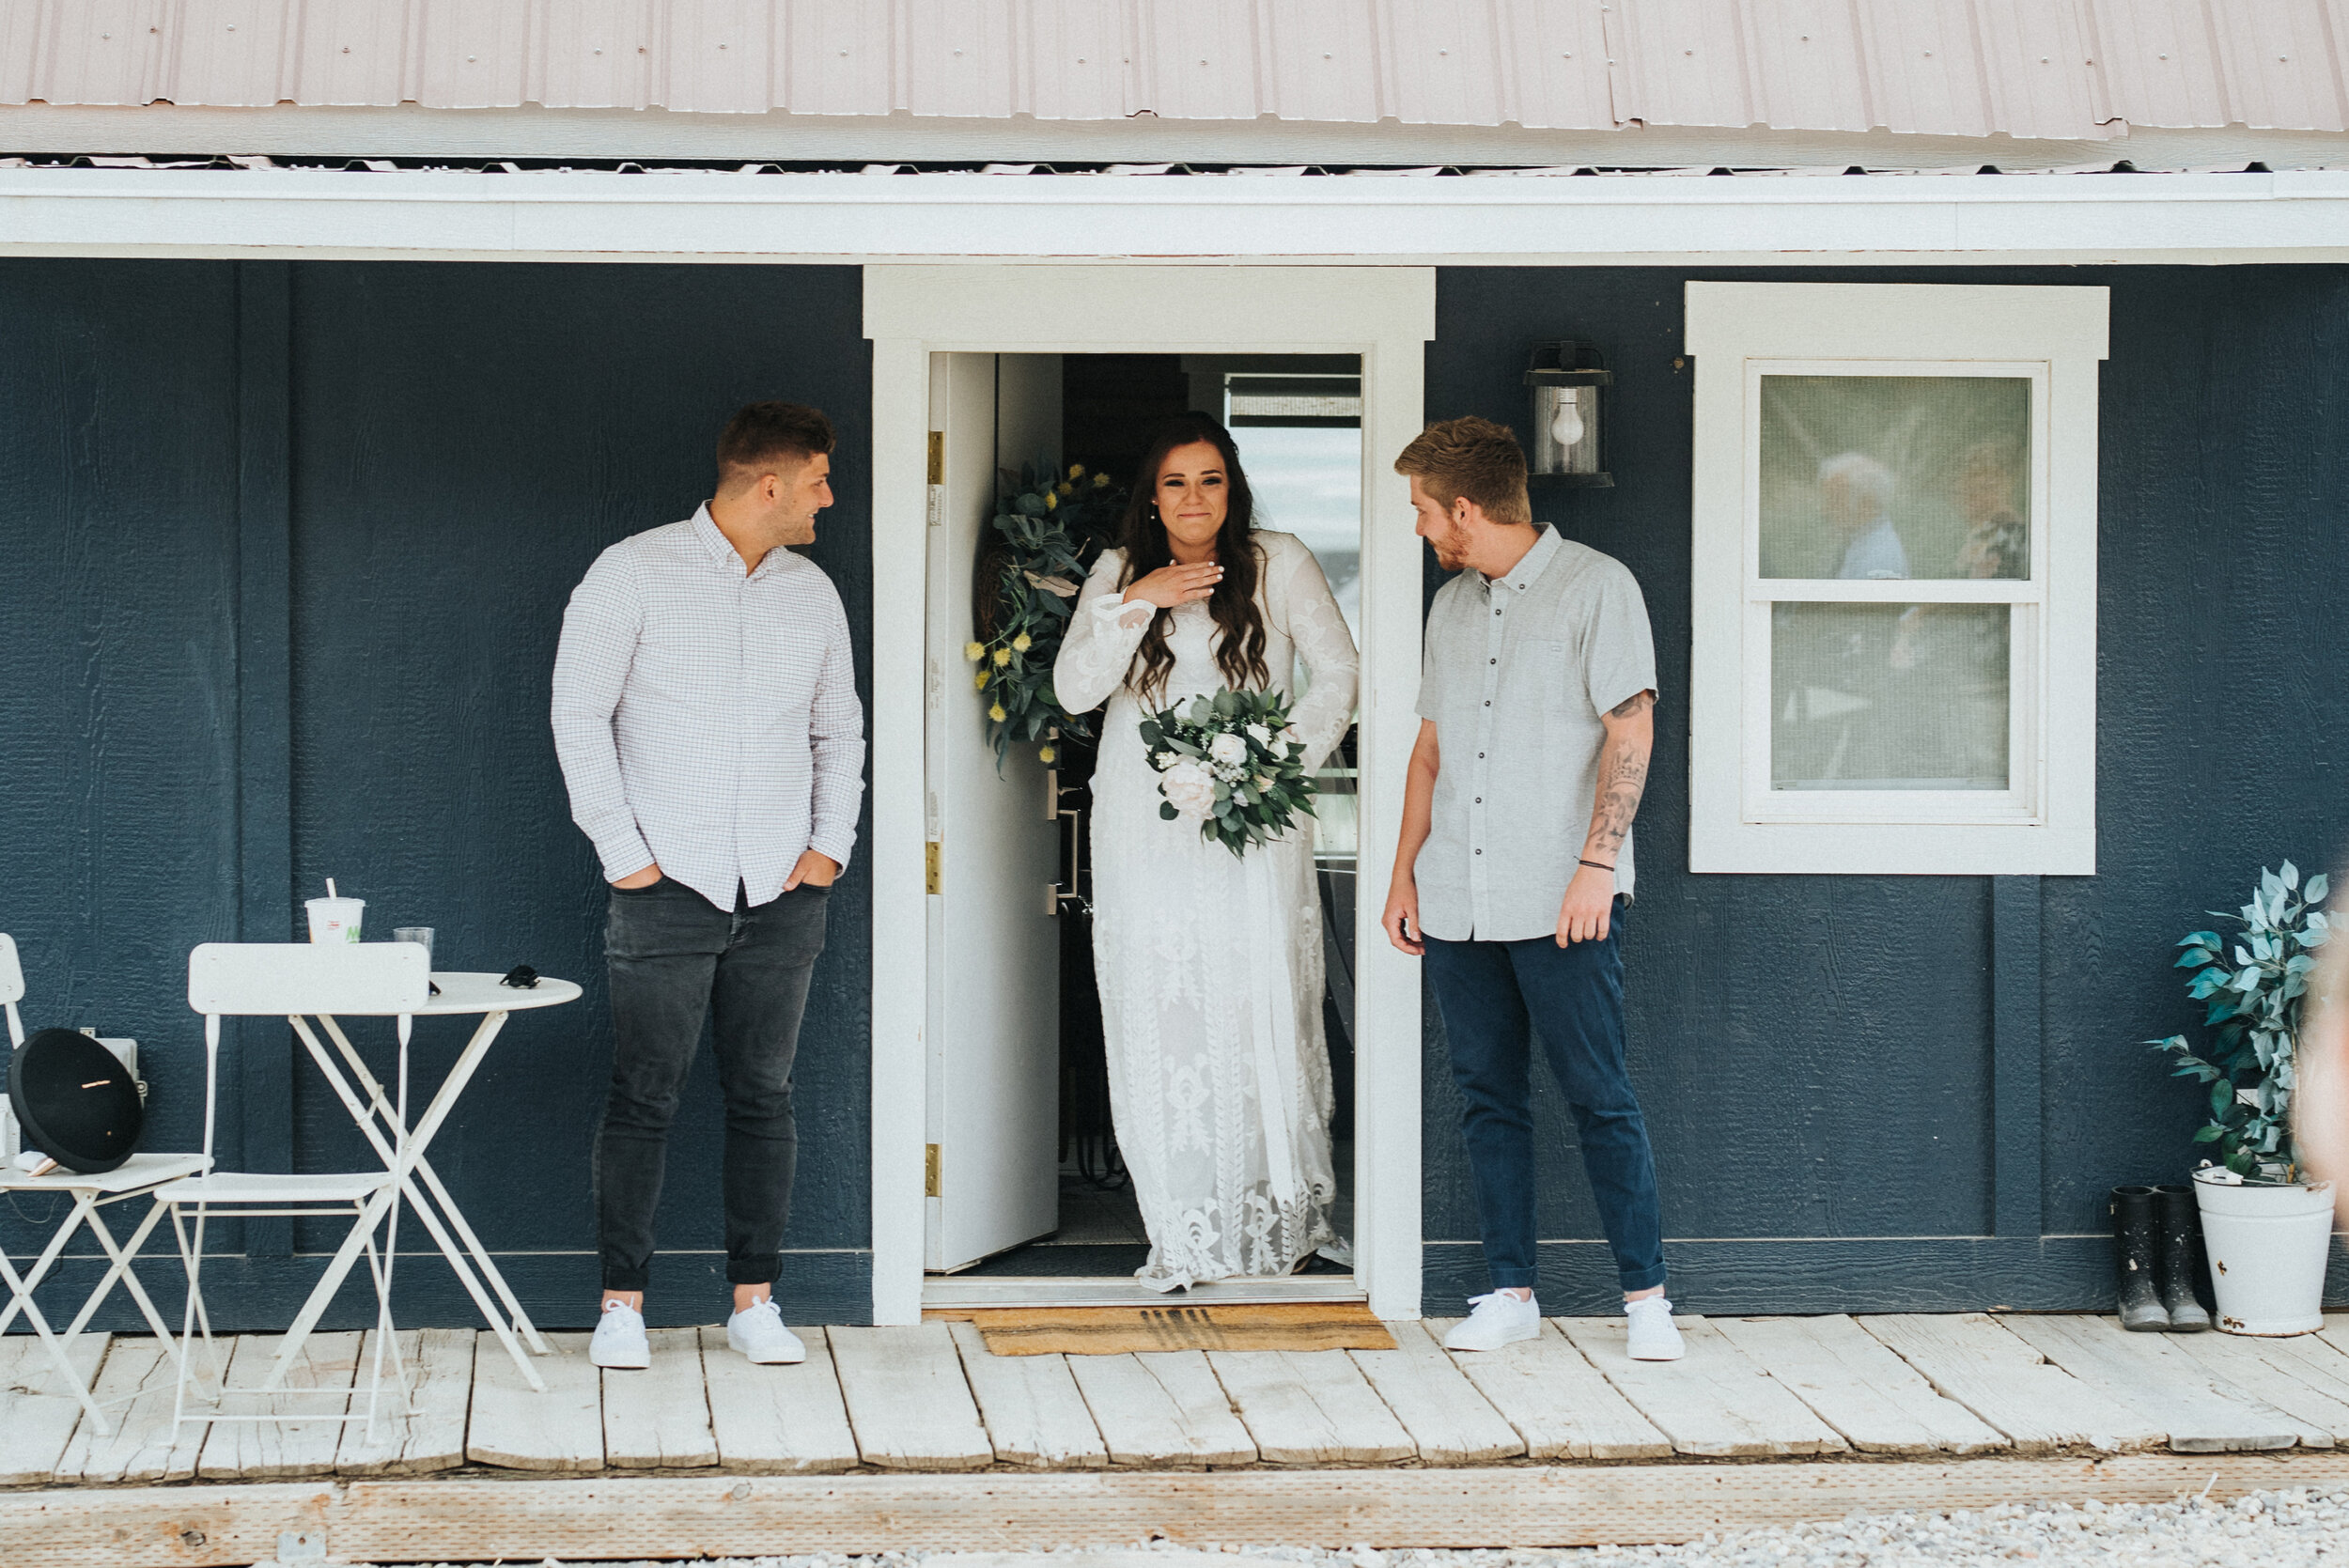 Wedding day photoshoot in Ephraim Utah photographed by Kristi Alyse Photography at the Airbnb rented for this special occasion. The first look of the bride as she prepared to walk down the ailse. photography wedding outdoor location western inspired rustic Airbnb photo aesthetic #ephraimutah #utahphotography #weddingdayphotography #gettingmarried #rusticwedding #utahwedding #westernstyle #weddingphotoshoot